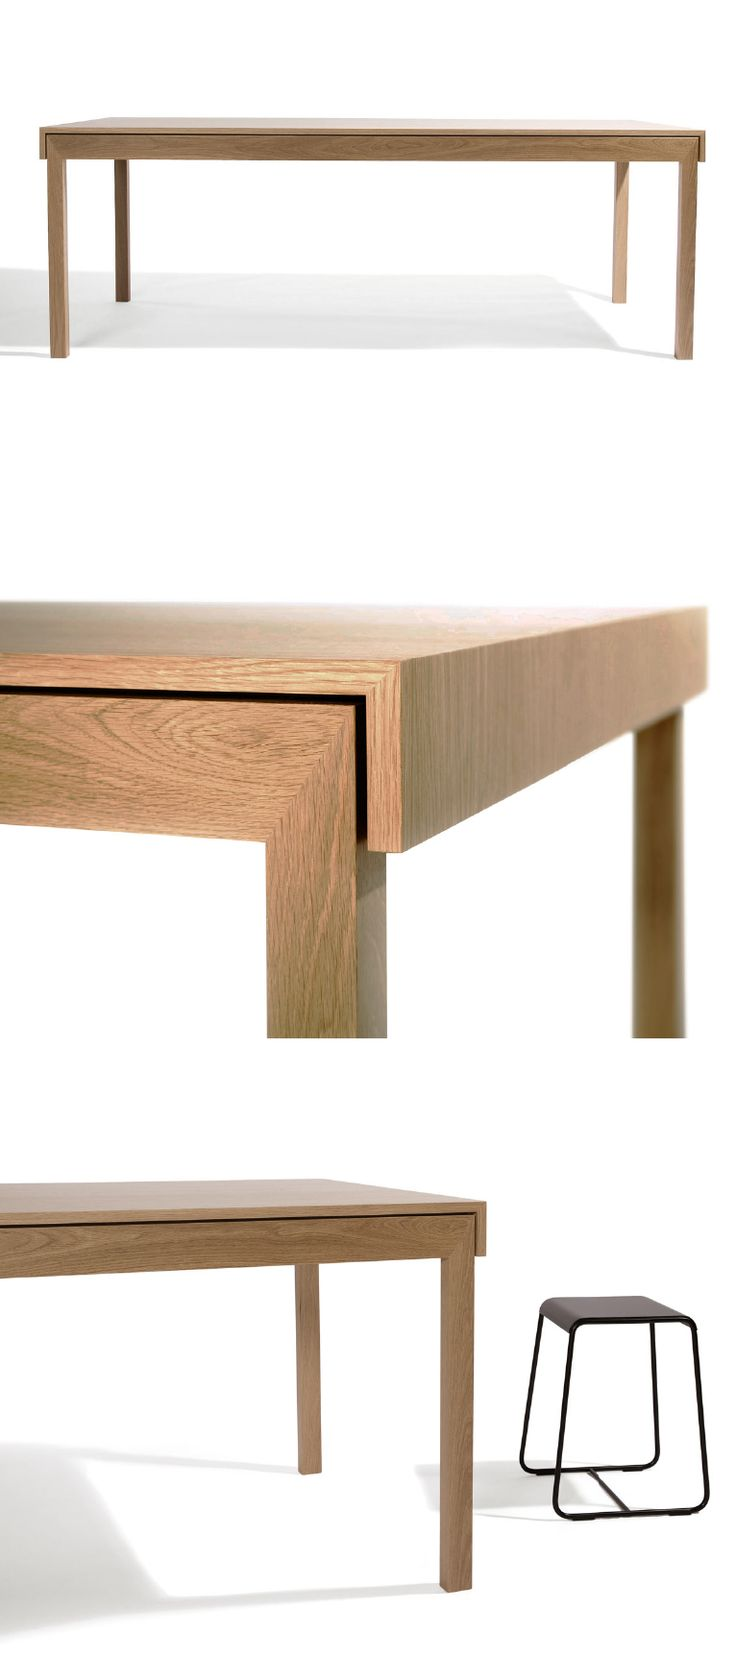 L Dinning Table by David Moreland #furniture #furnituredesign